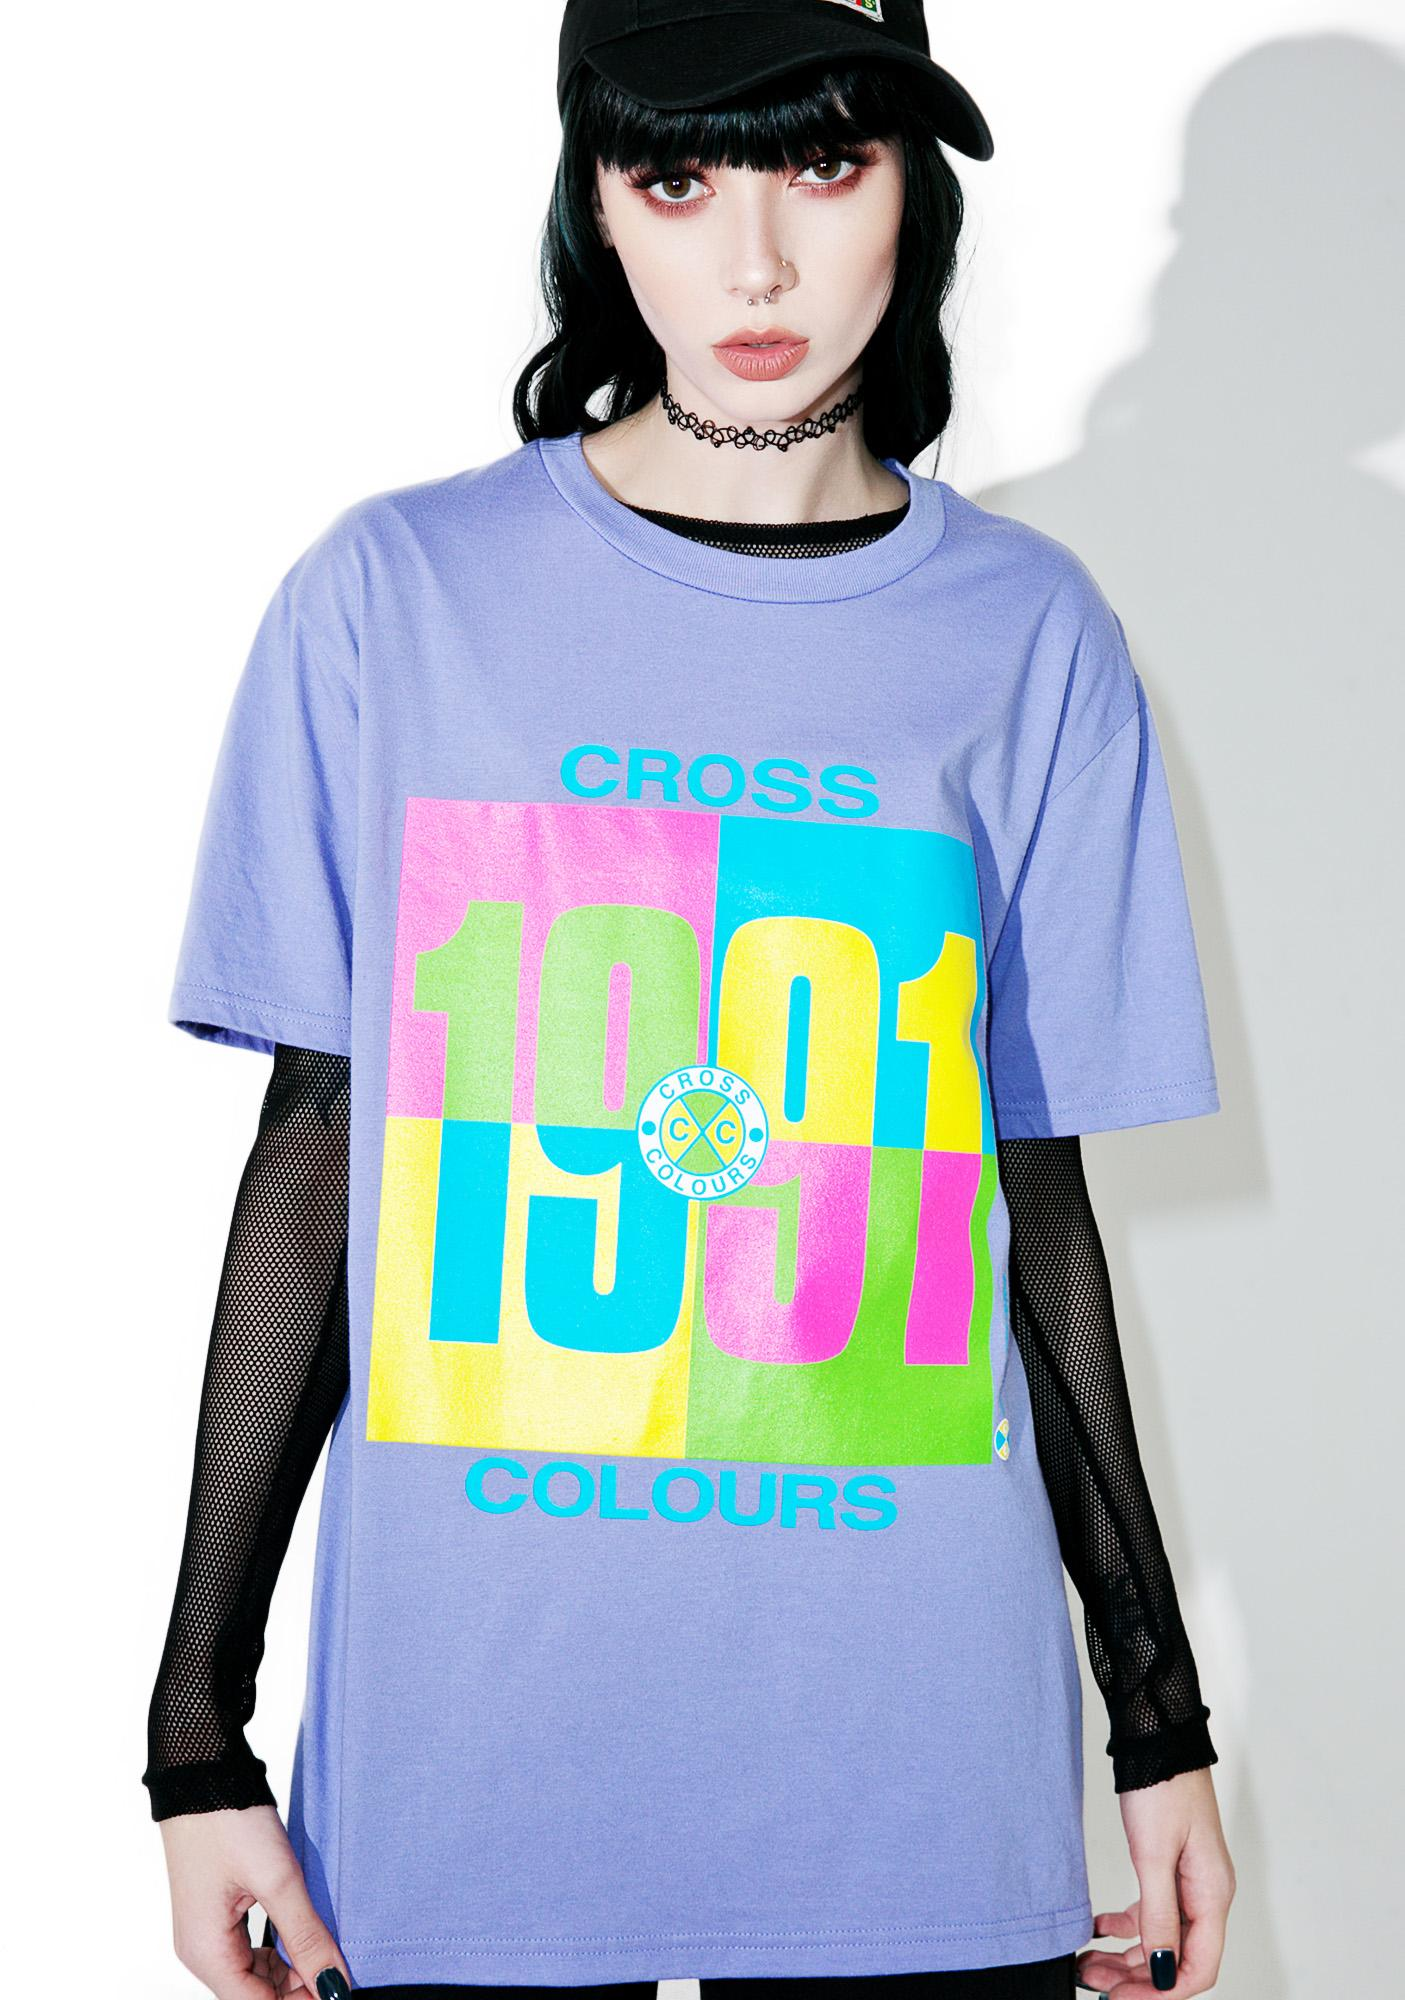 Cross Colours 1991 T-Shirt